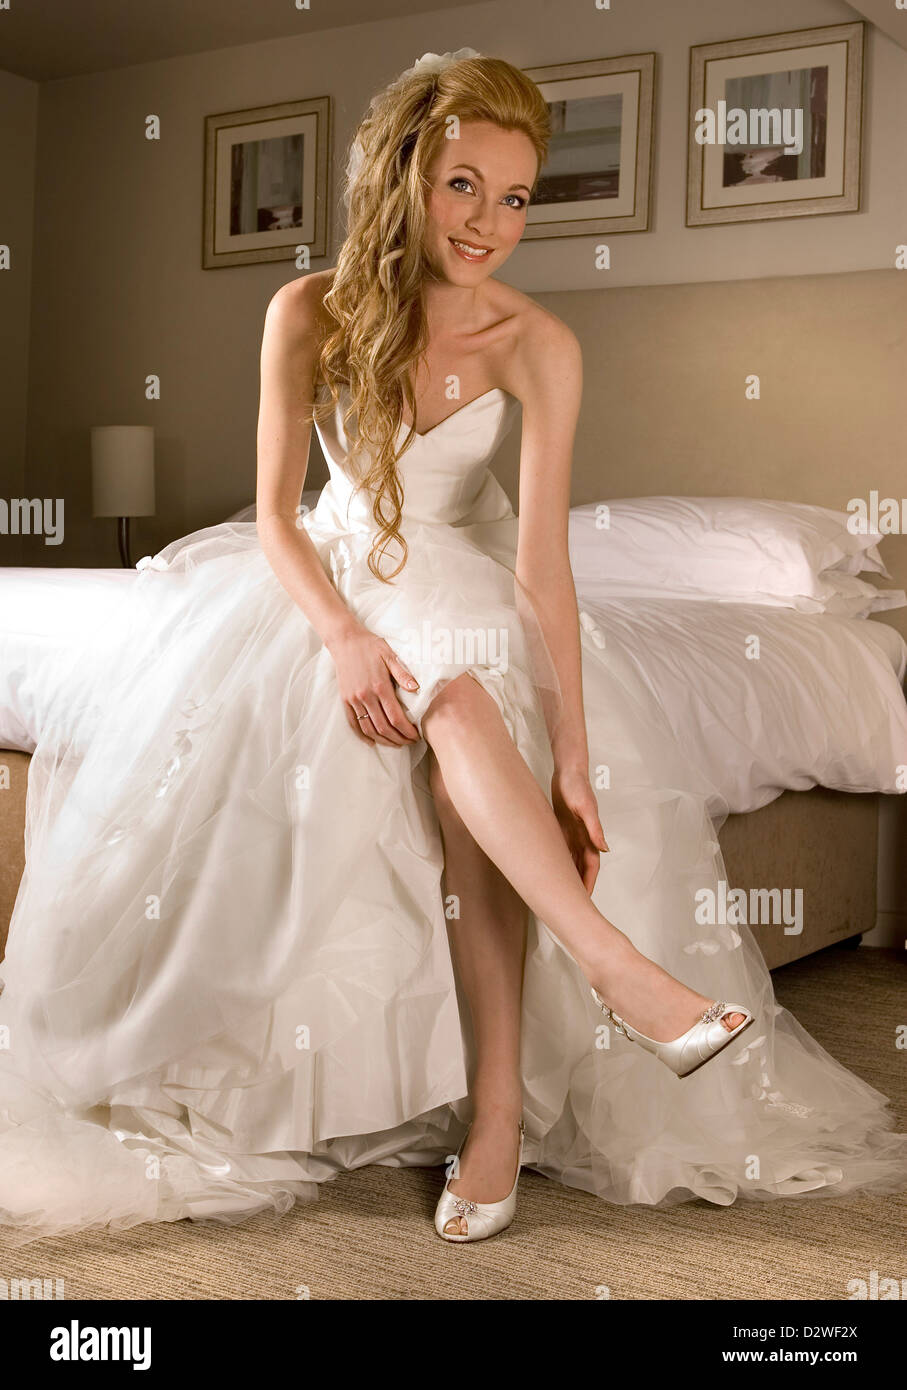 A Happy Looking Bride Sitting On The Edge Of Her Bed In